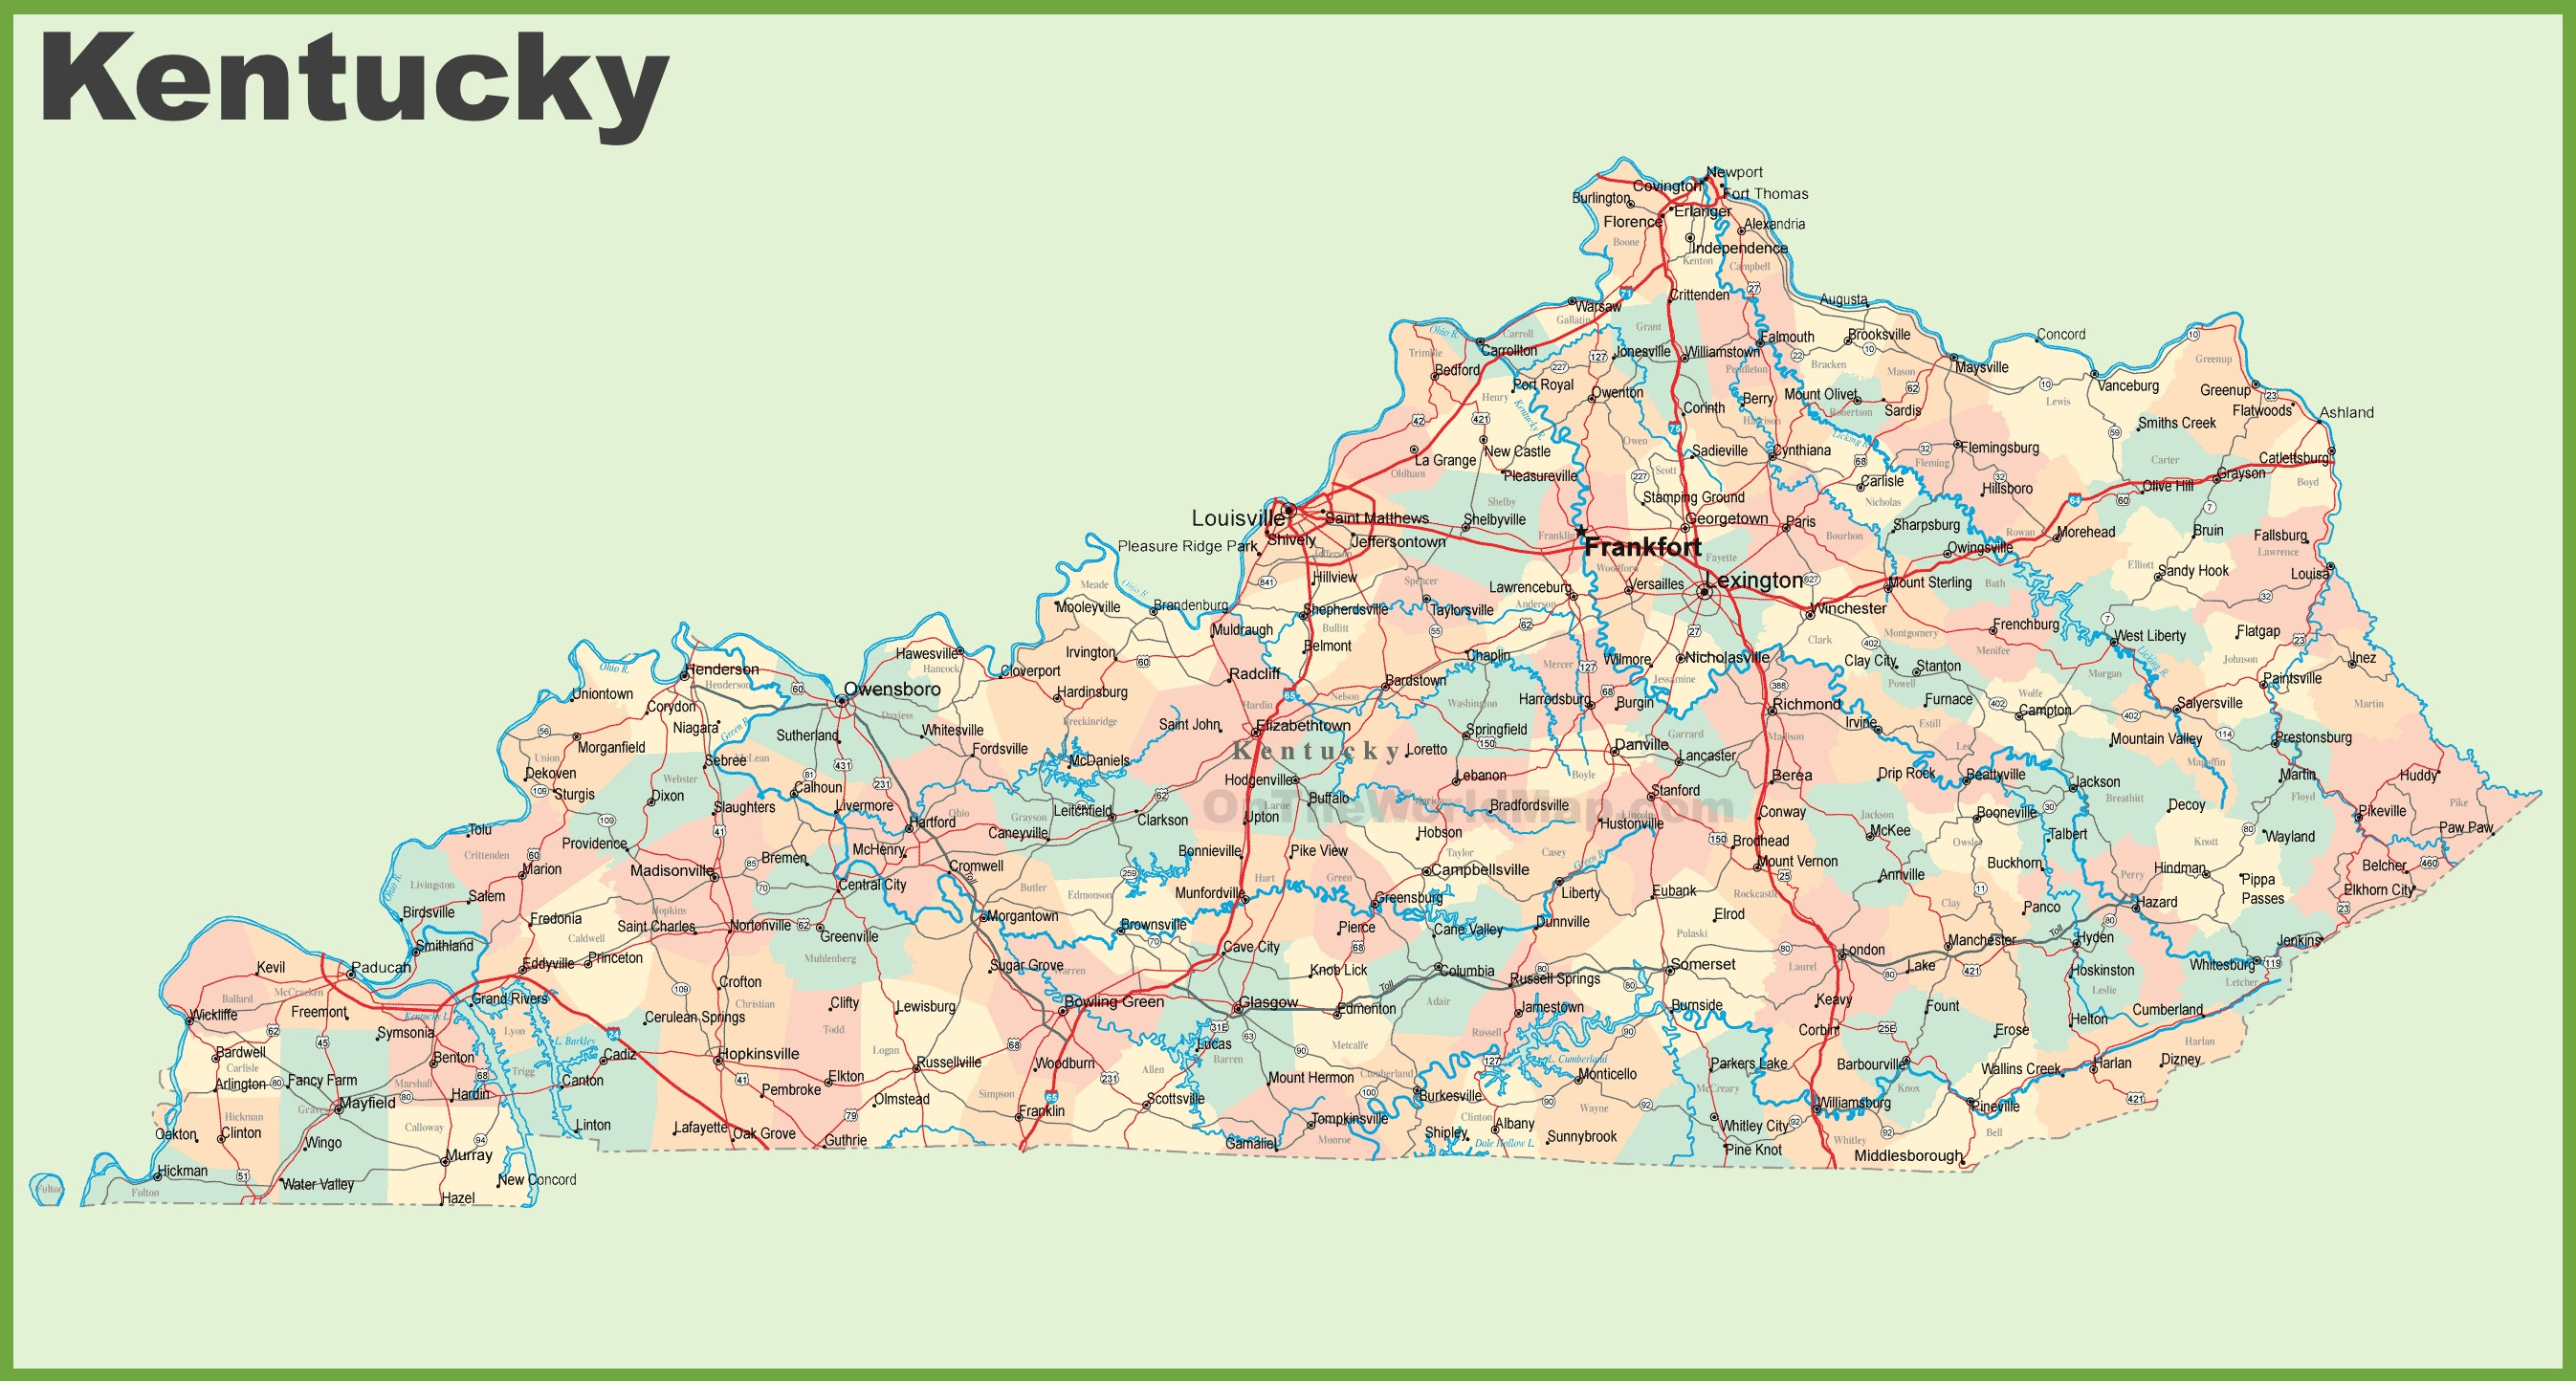 Kentucky City Map | Gadgets 2018 on kentucky state parks, kentucky state information, kentucky state jobs, kentucky state restaurants, kentucky state street, kentucky state art, kentucky state weather, kentucky state water, kentucky state home, kentucky state recreation, kentucky state sports, kentucky road map with cities, kentucky state hotels, kentucky state calendar, kentucky state demographics, kentucky state attractions, louisville city map, kentucky state economy, kentucky state history, kentucky united states map,